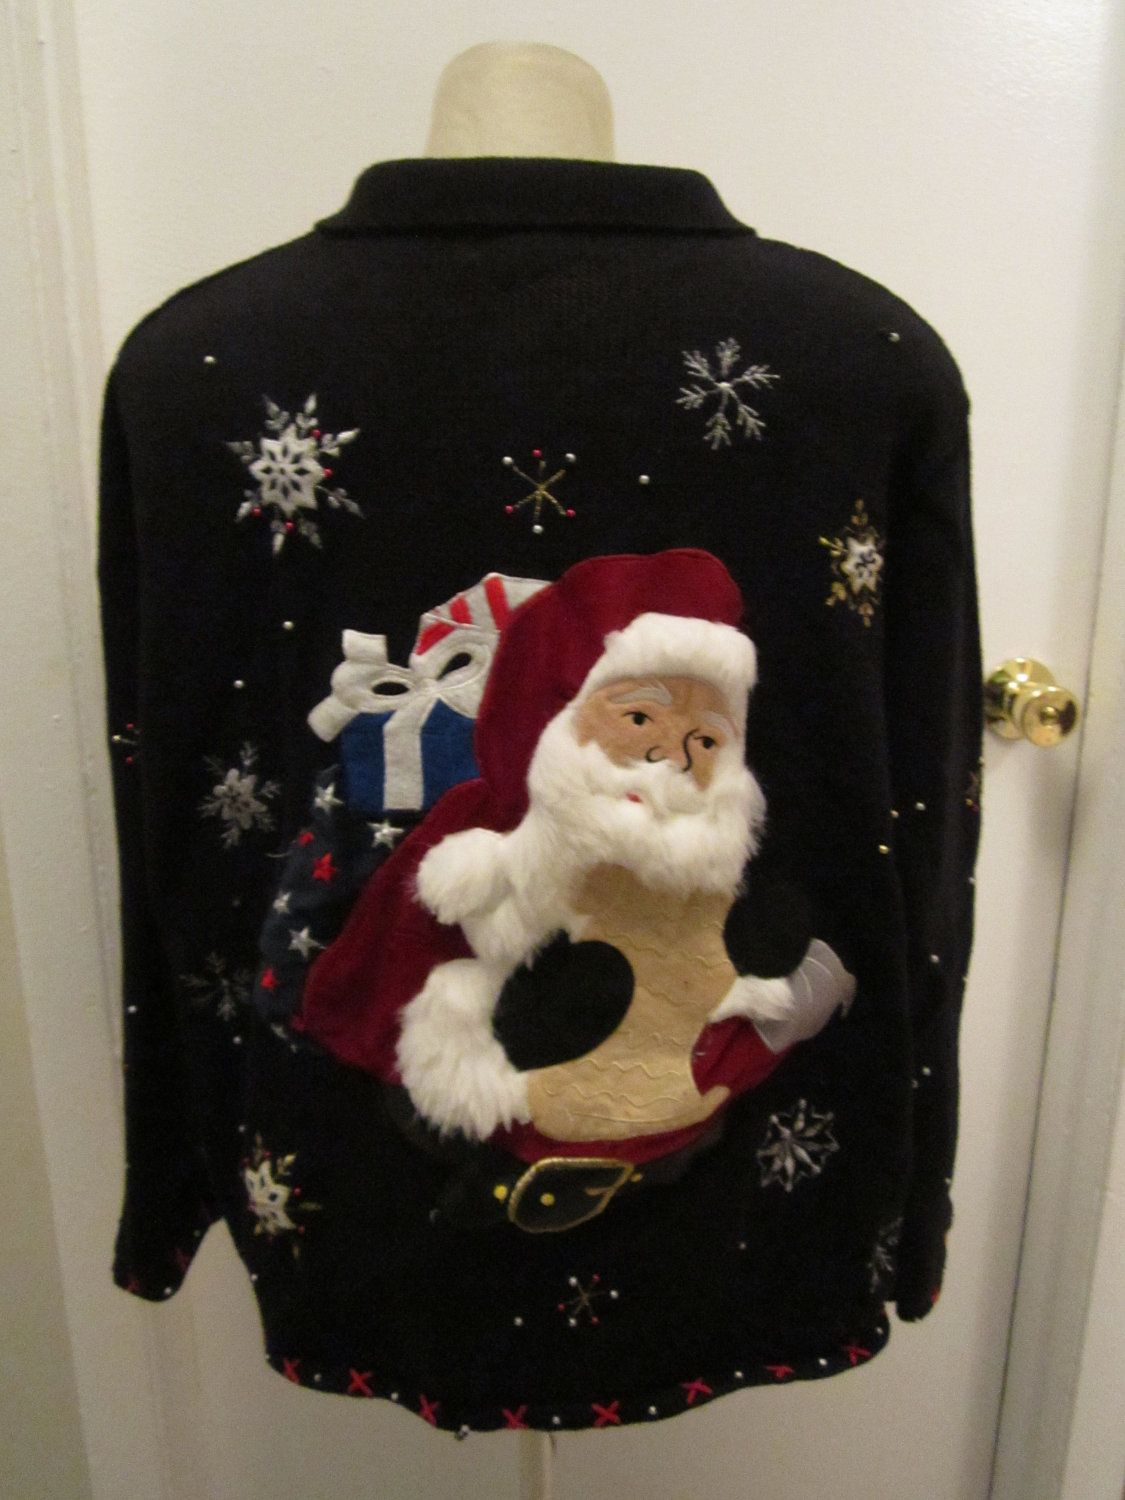 2ba177951384 Huge Creepy Life Like Santa Ugly Christmas Sweater Size 2X Zip Front  Cardigan Got to have this one. $45.00, via Etsy. WHY ISN'T SANTA WEARING A  SHIRT?